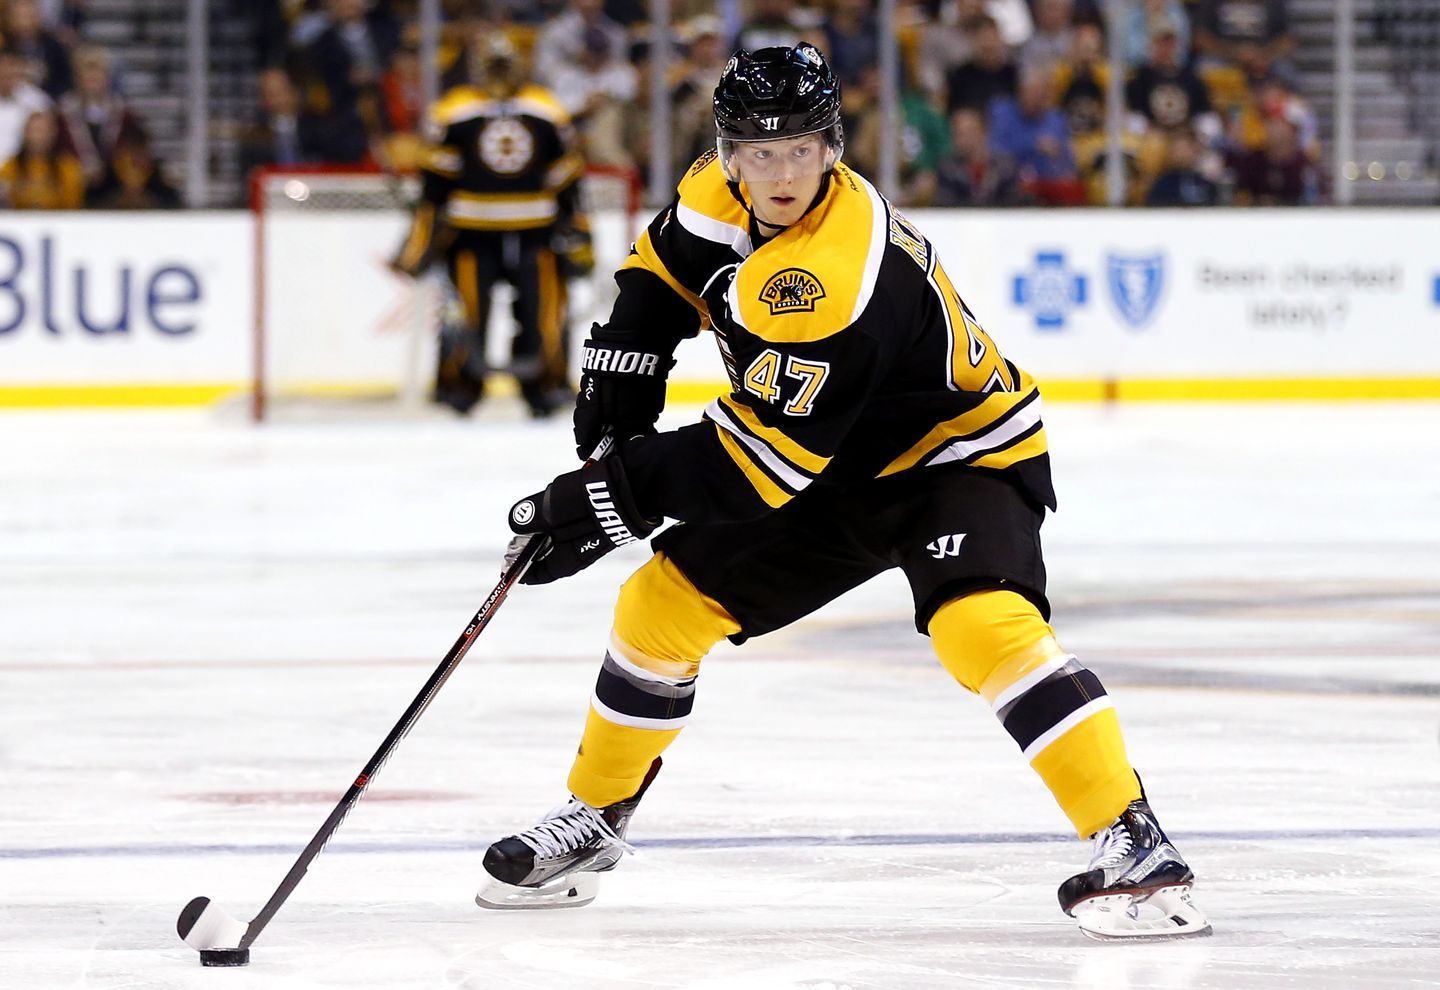 Bruins Krug Is Still Sizing Up His Opportunities The Boston Globe